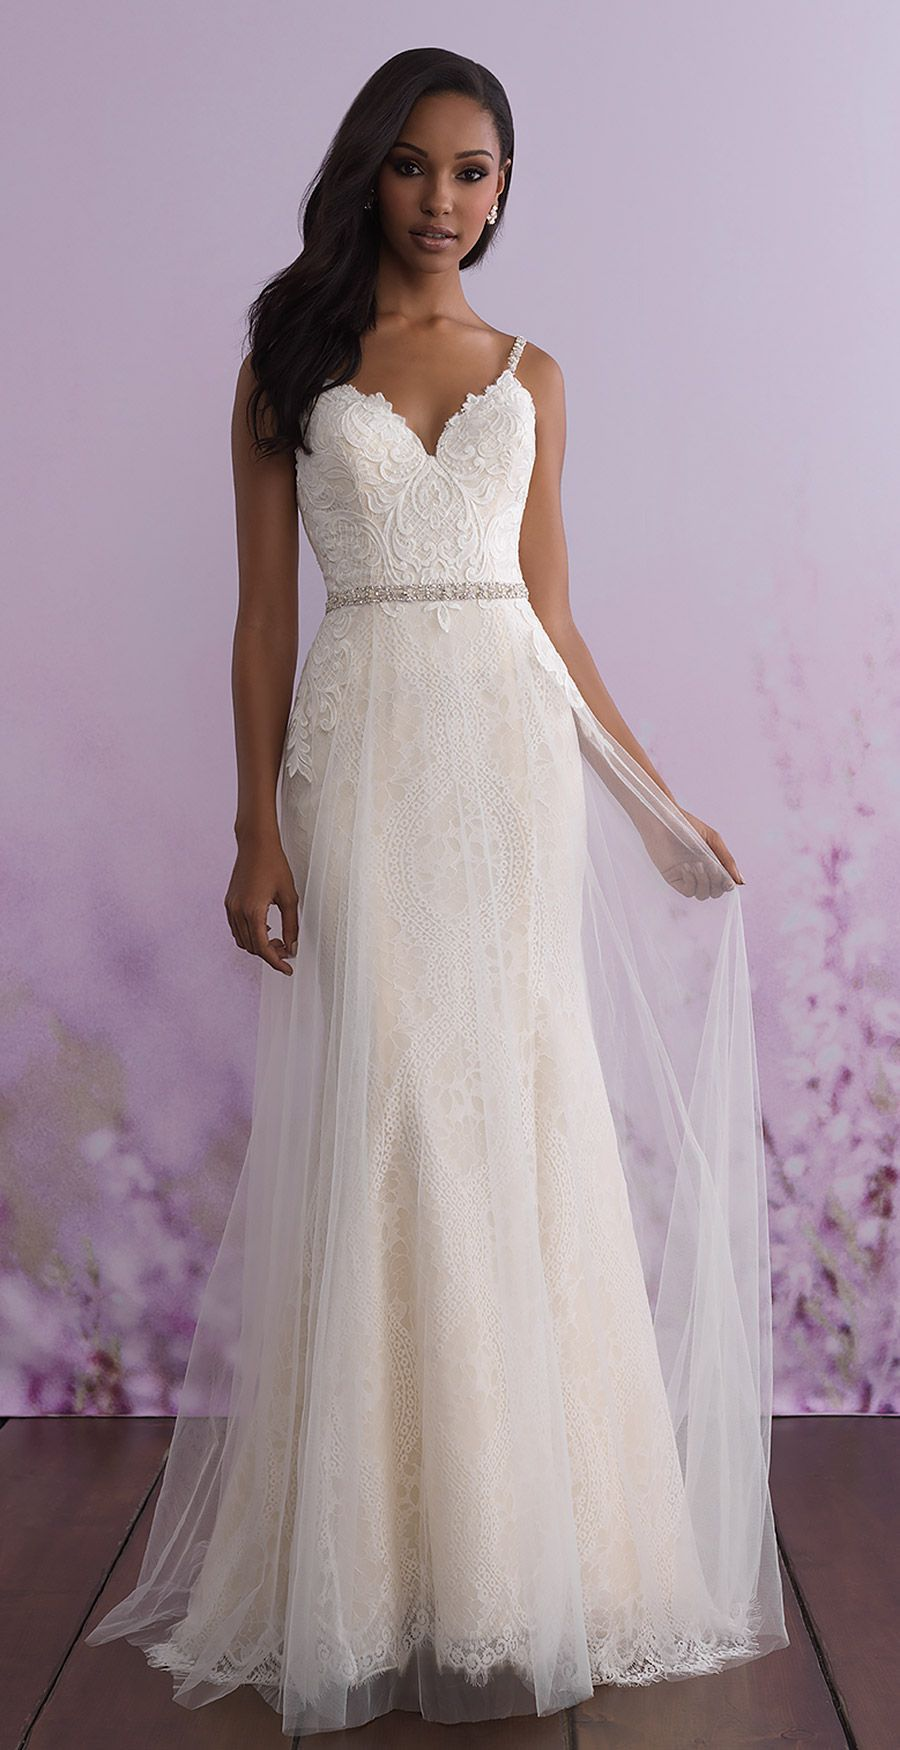 Allure romance wedding dress style details so pretty youud be